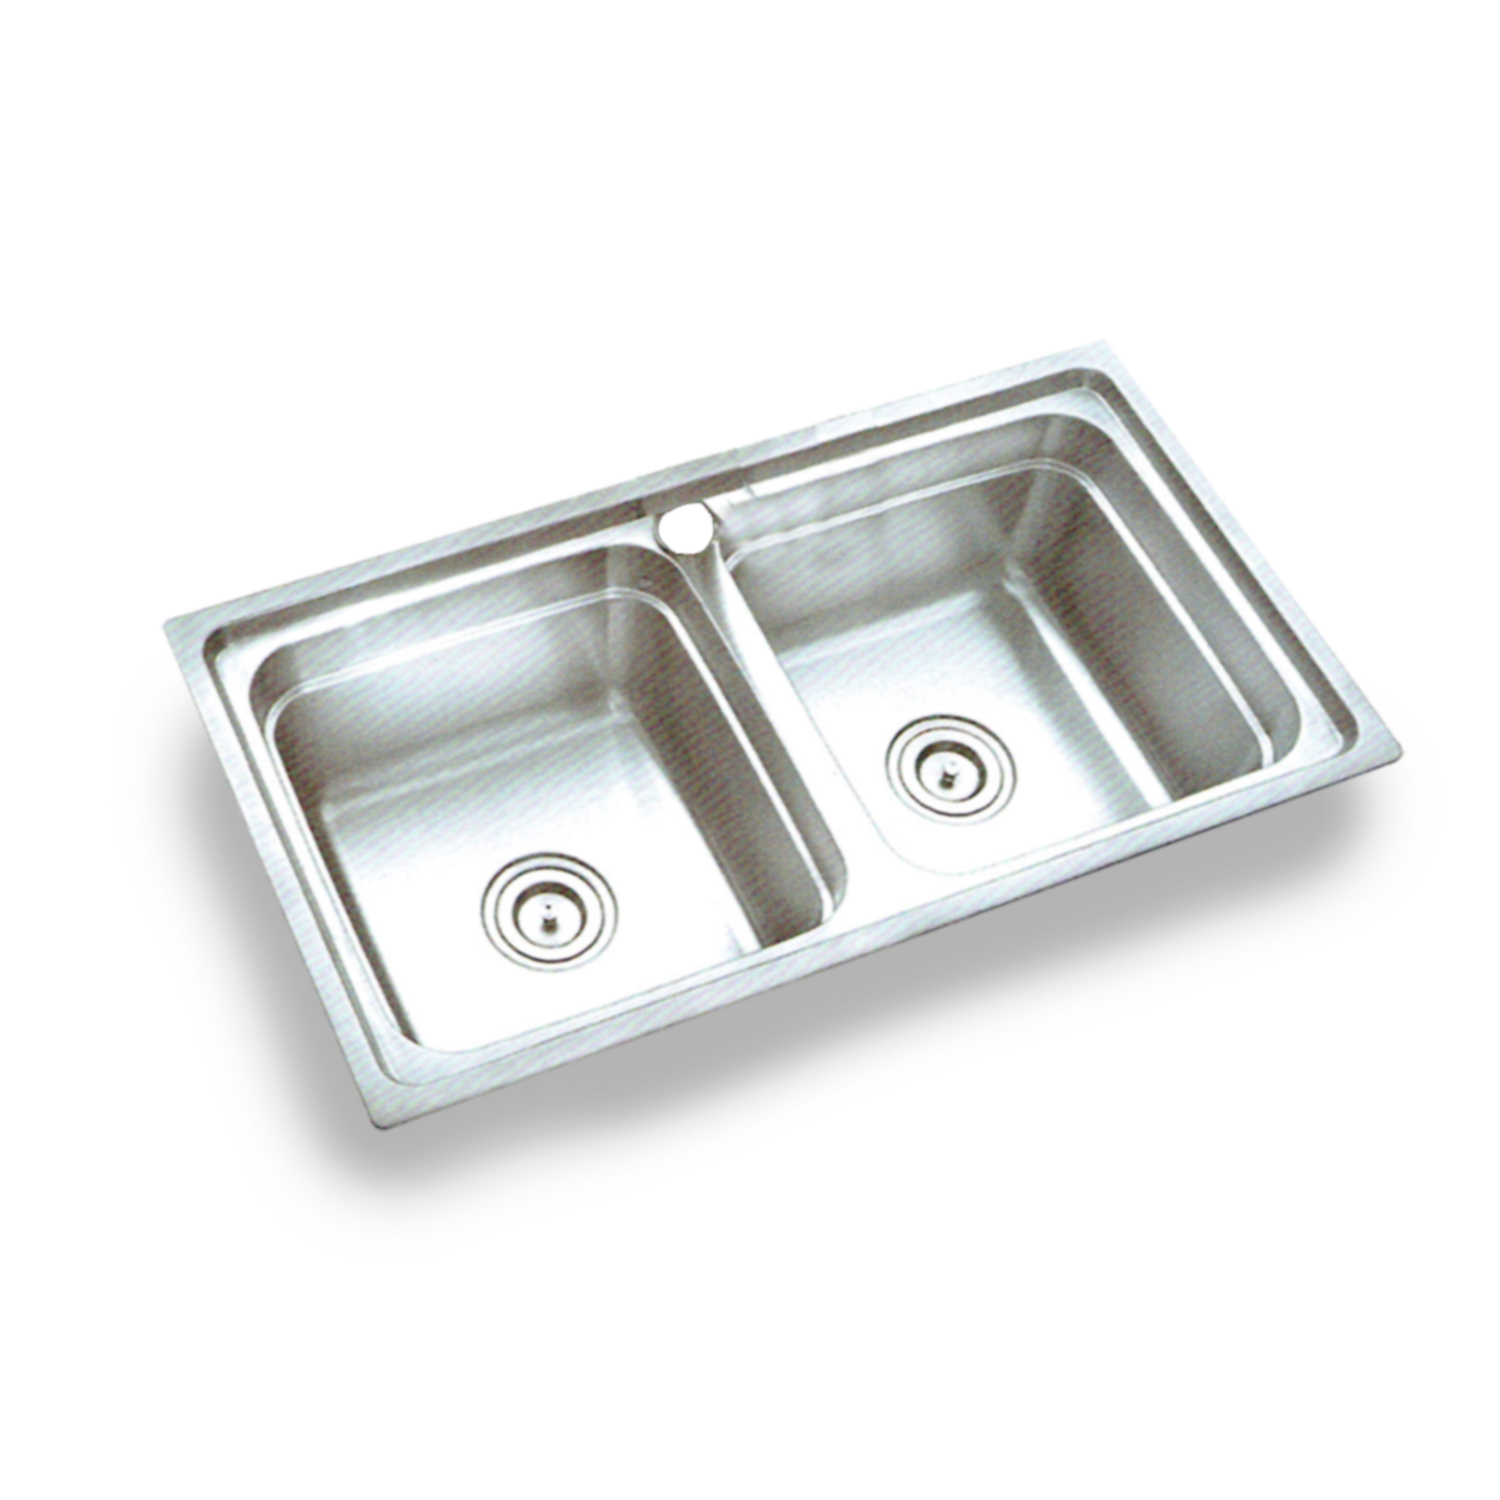 Double Basin Stainless Steel MB8144